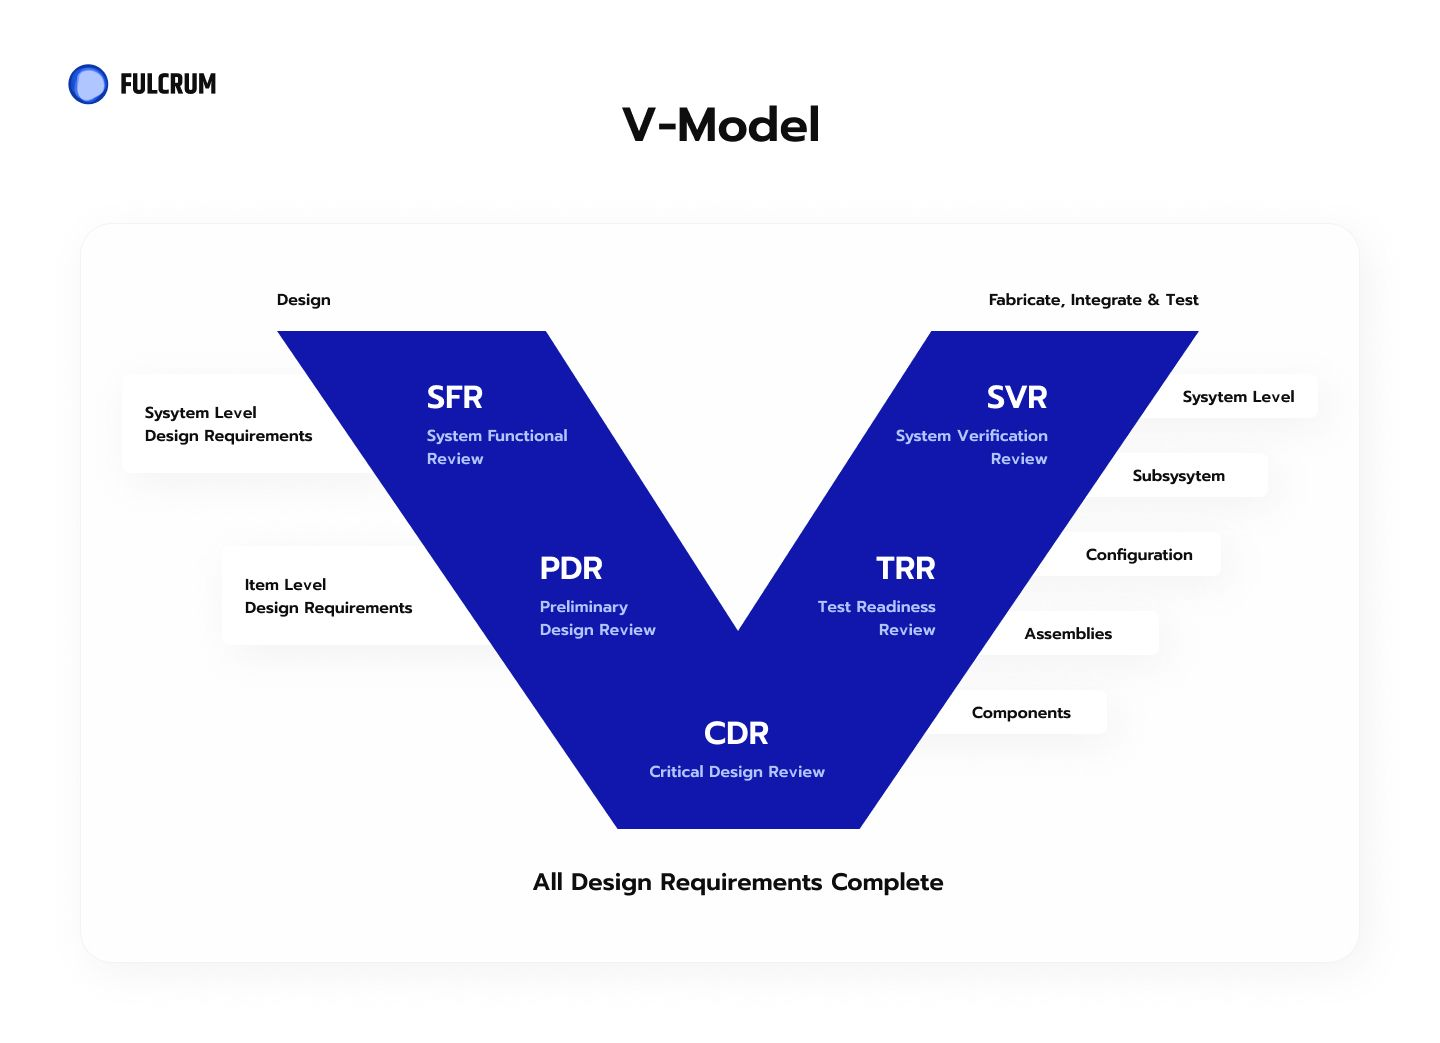 The V-model is a graphical representation of a systems development lifecycle.